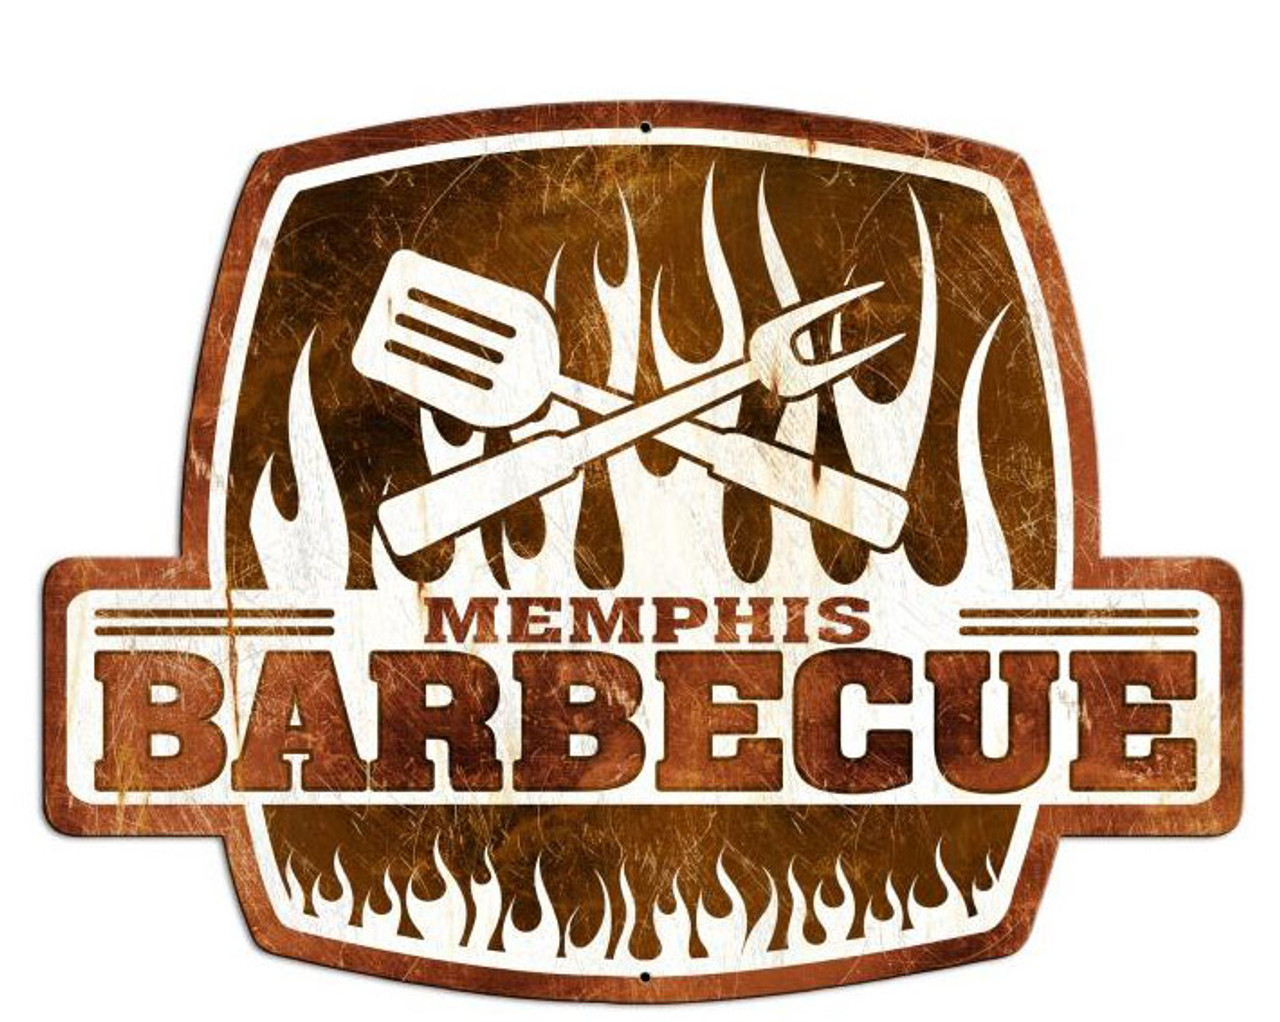 Memphis Barbecue Custom Shape Metal Sign 25 x 19 Inches